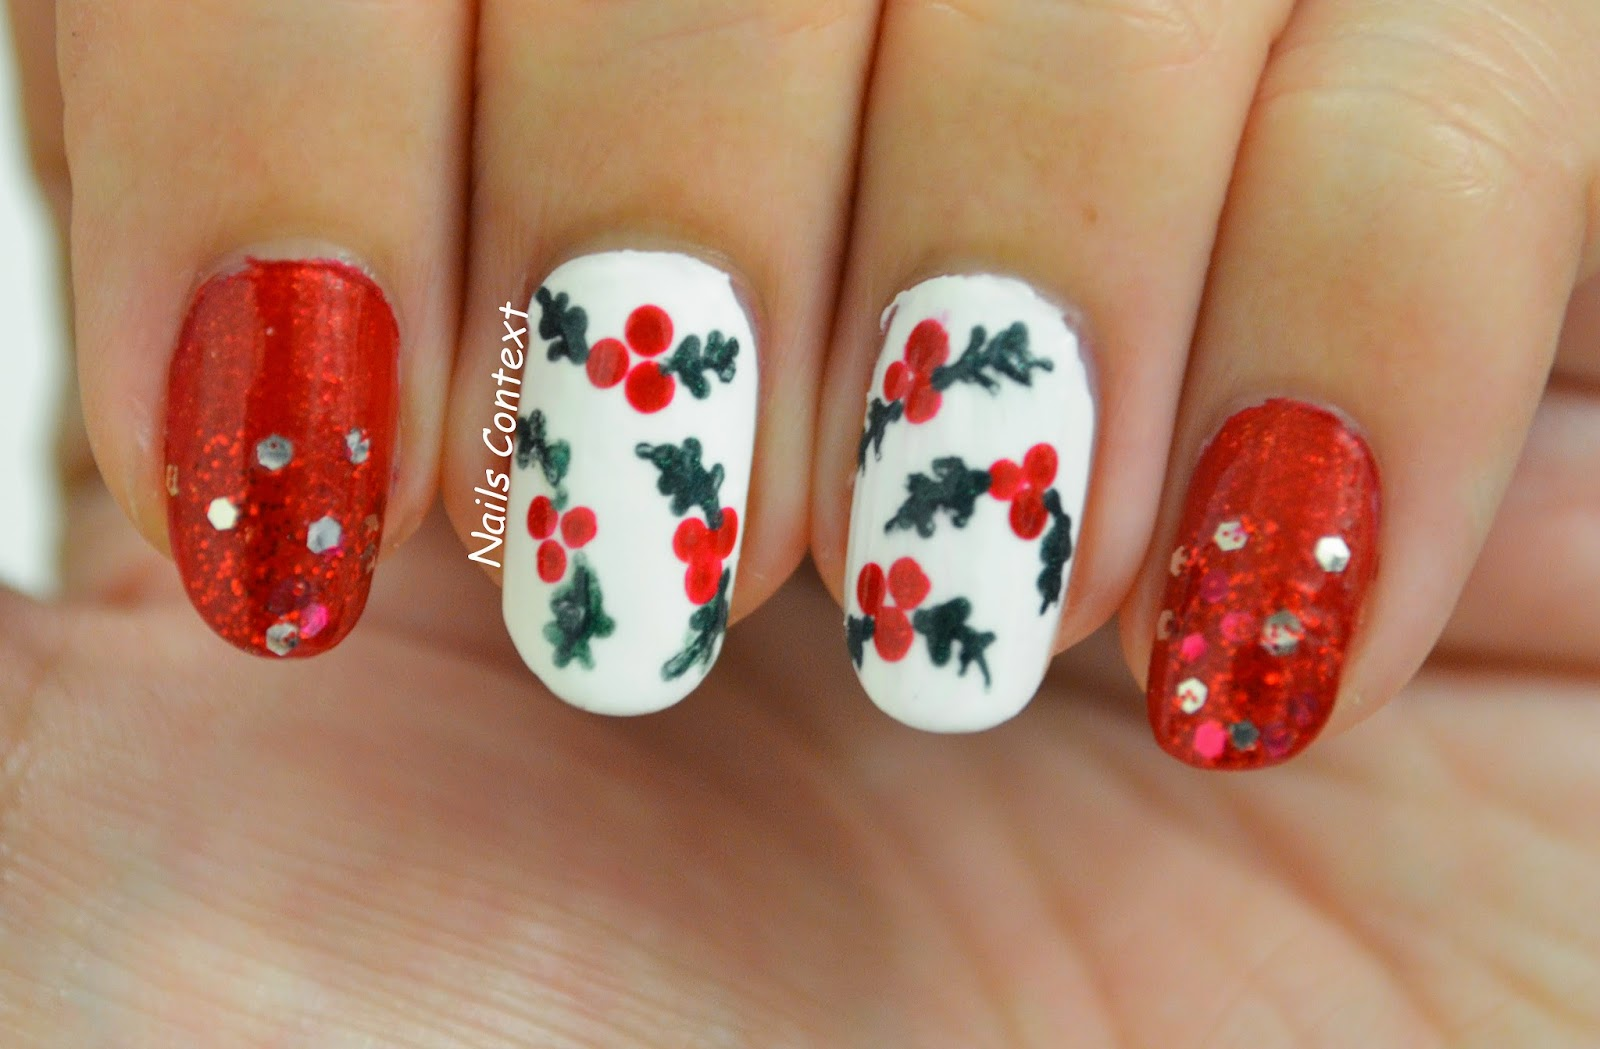 Nails context december 2014 a kiss deserving nail art prinsesfo Image collections